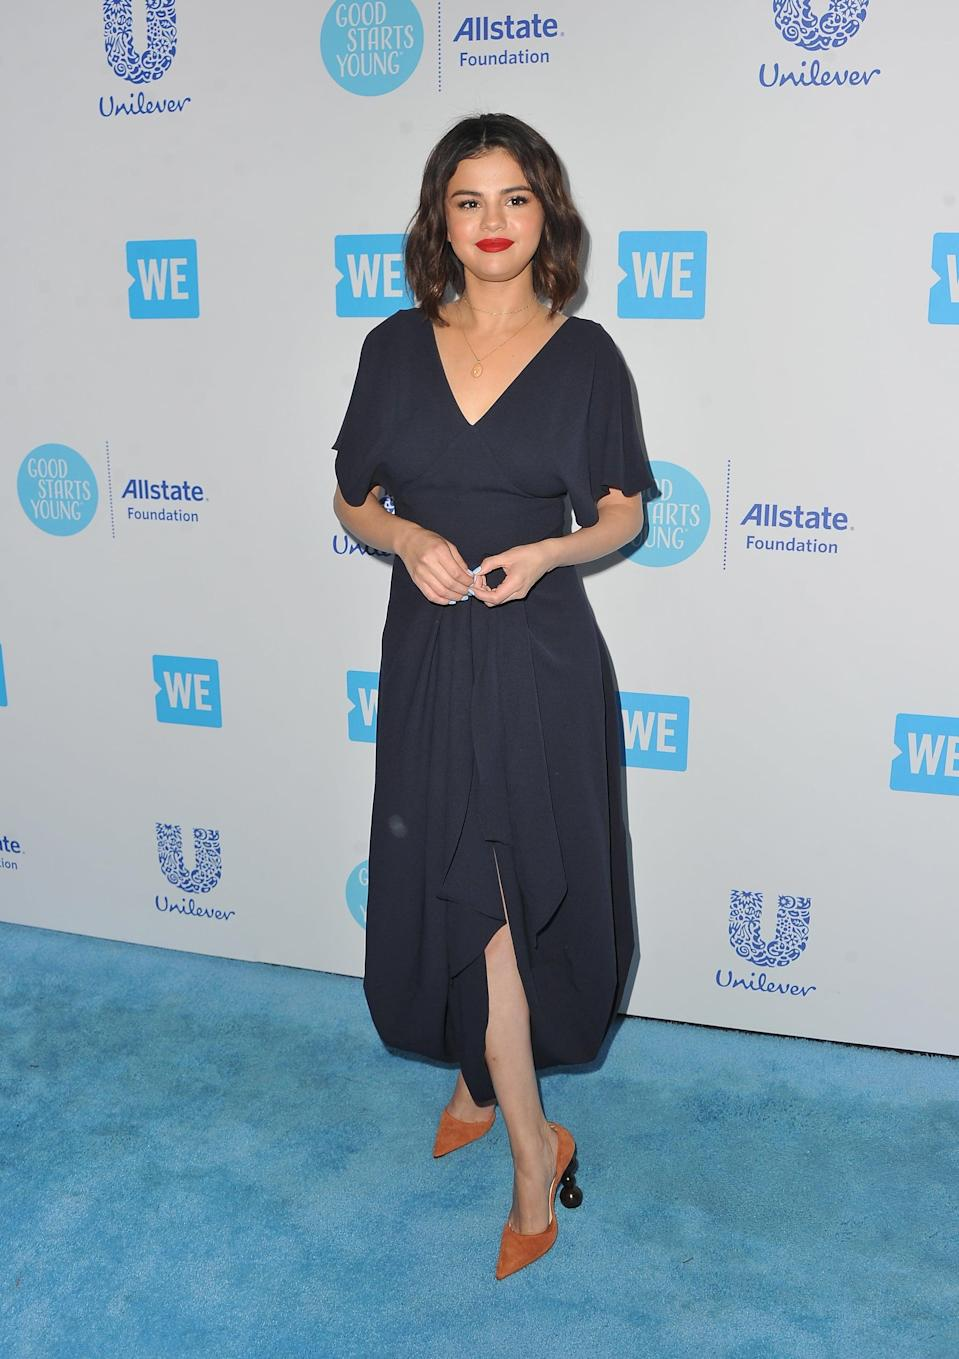 """<p><a href=""""https://www.popsugar.com/fashion/Selena-Gomez-Brown-Heels-We-Day-2018-44761525"""" class=""""link rapid-noclick-resp"""" rel=""""nofollow noopener"""" target=""""_blank"""" data-ylk=""""slk:Selena wore a total Jacquemus look"""">Selena wore a total Jacquemus look</a> to WE Day California in April 2018. Her wooden, marble-effect heels made a statement as she walked down the red carpet.</p>"""